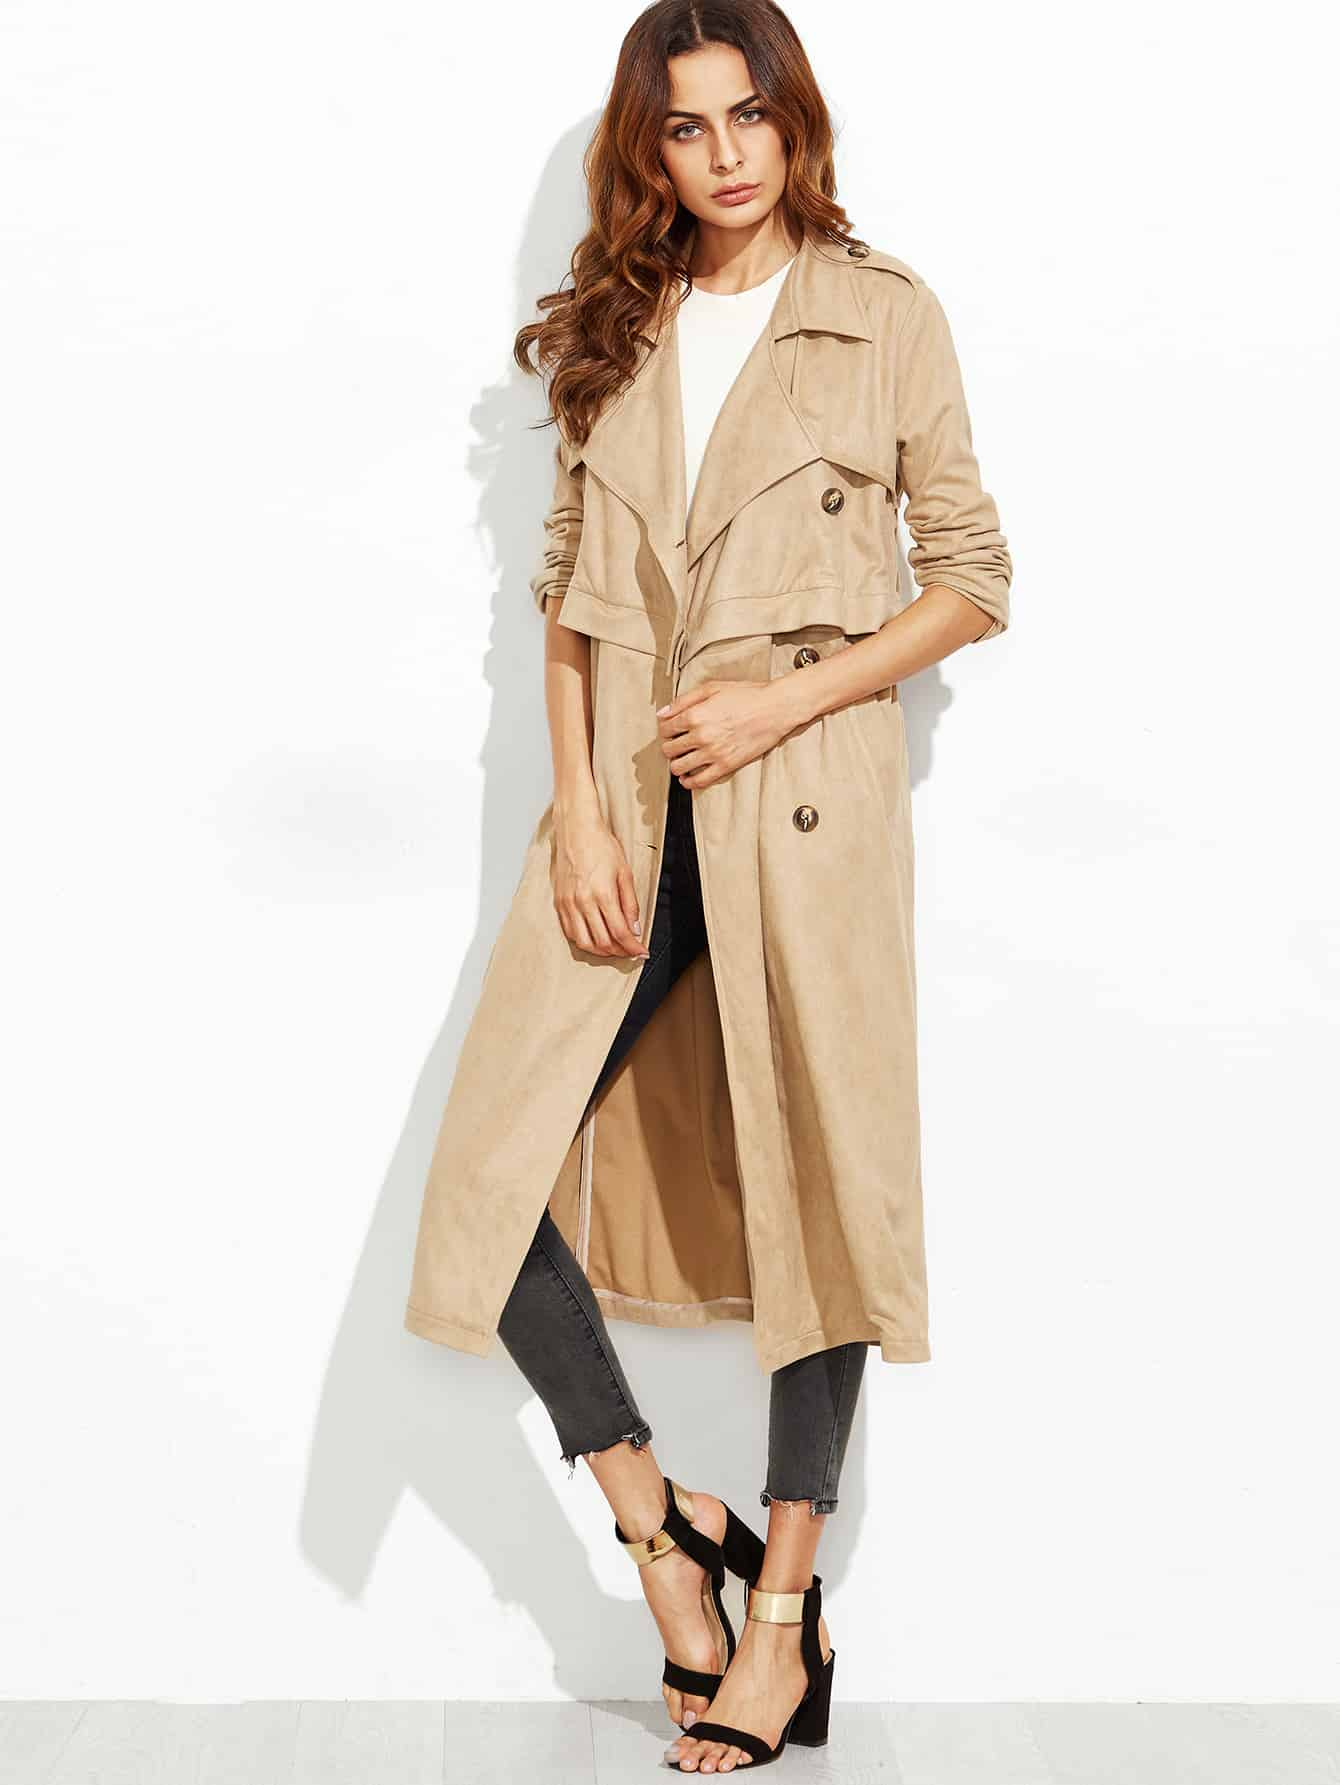 noon by noor look for less -- camel trenchcoat